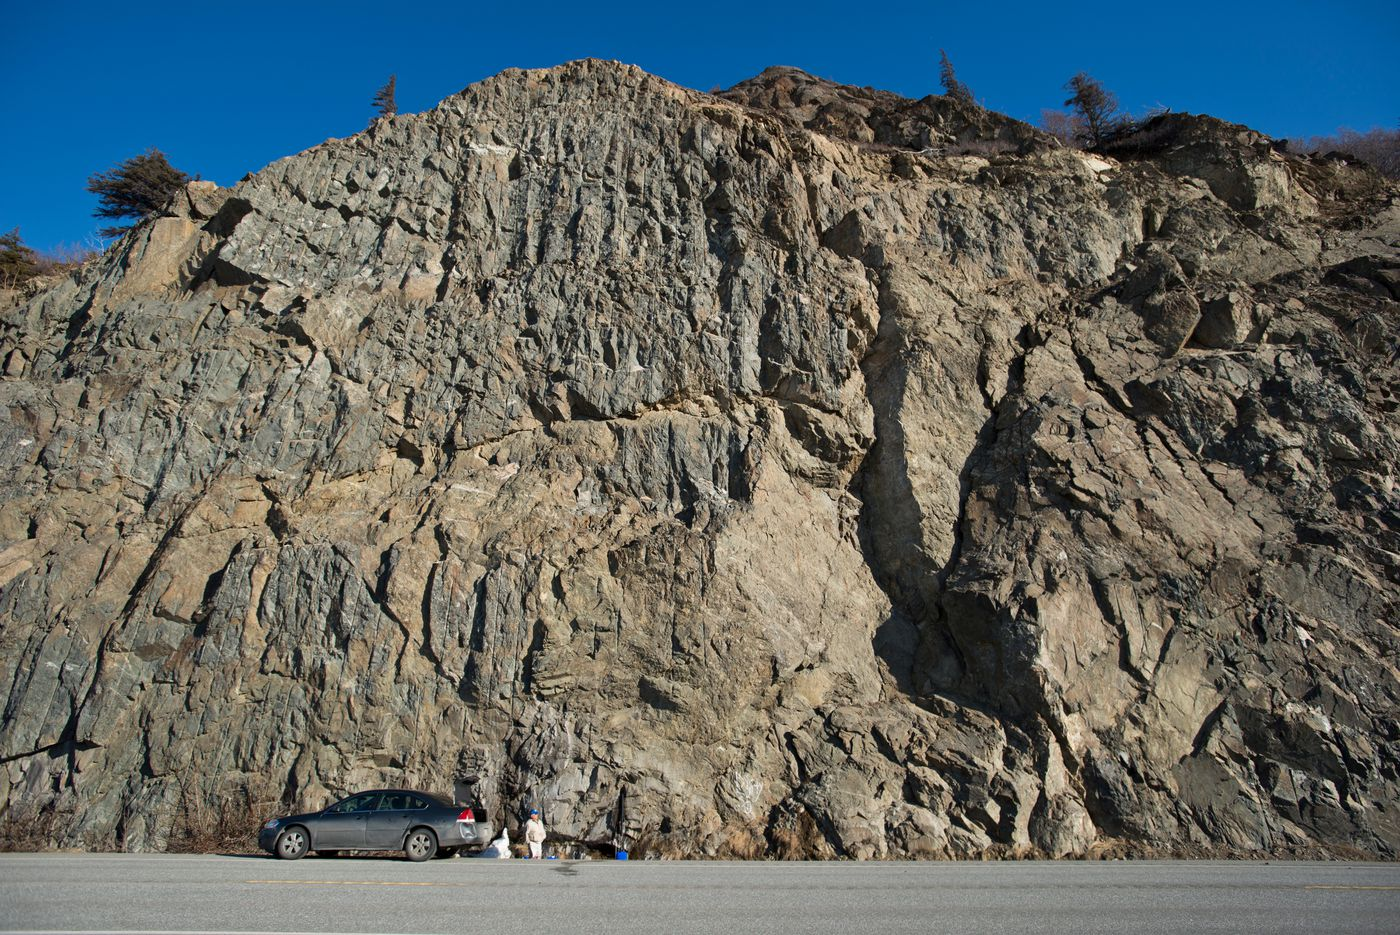 Water draining from the base of a rock wall along the Seward Highway at Mile 109 has been a popular jug-filling spot for decades. The Alaska Department of Transportation said the spot is a safety concern because of traffic and rockfall. (Marc Lester / Alaska Dispatch News)